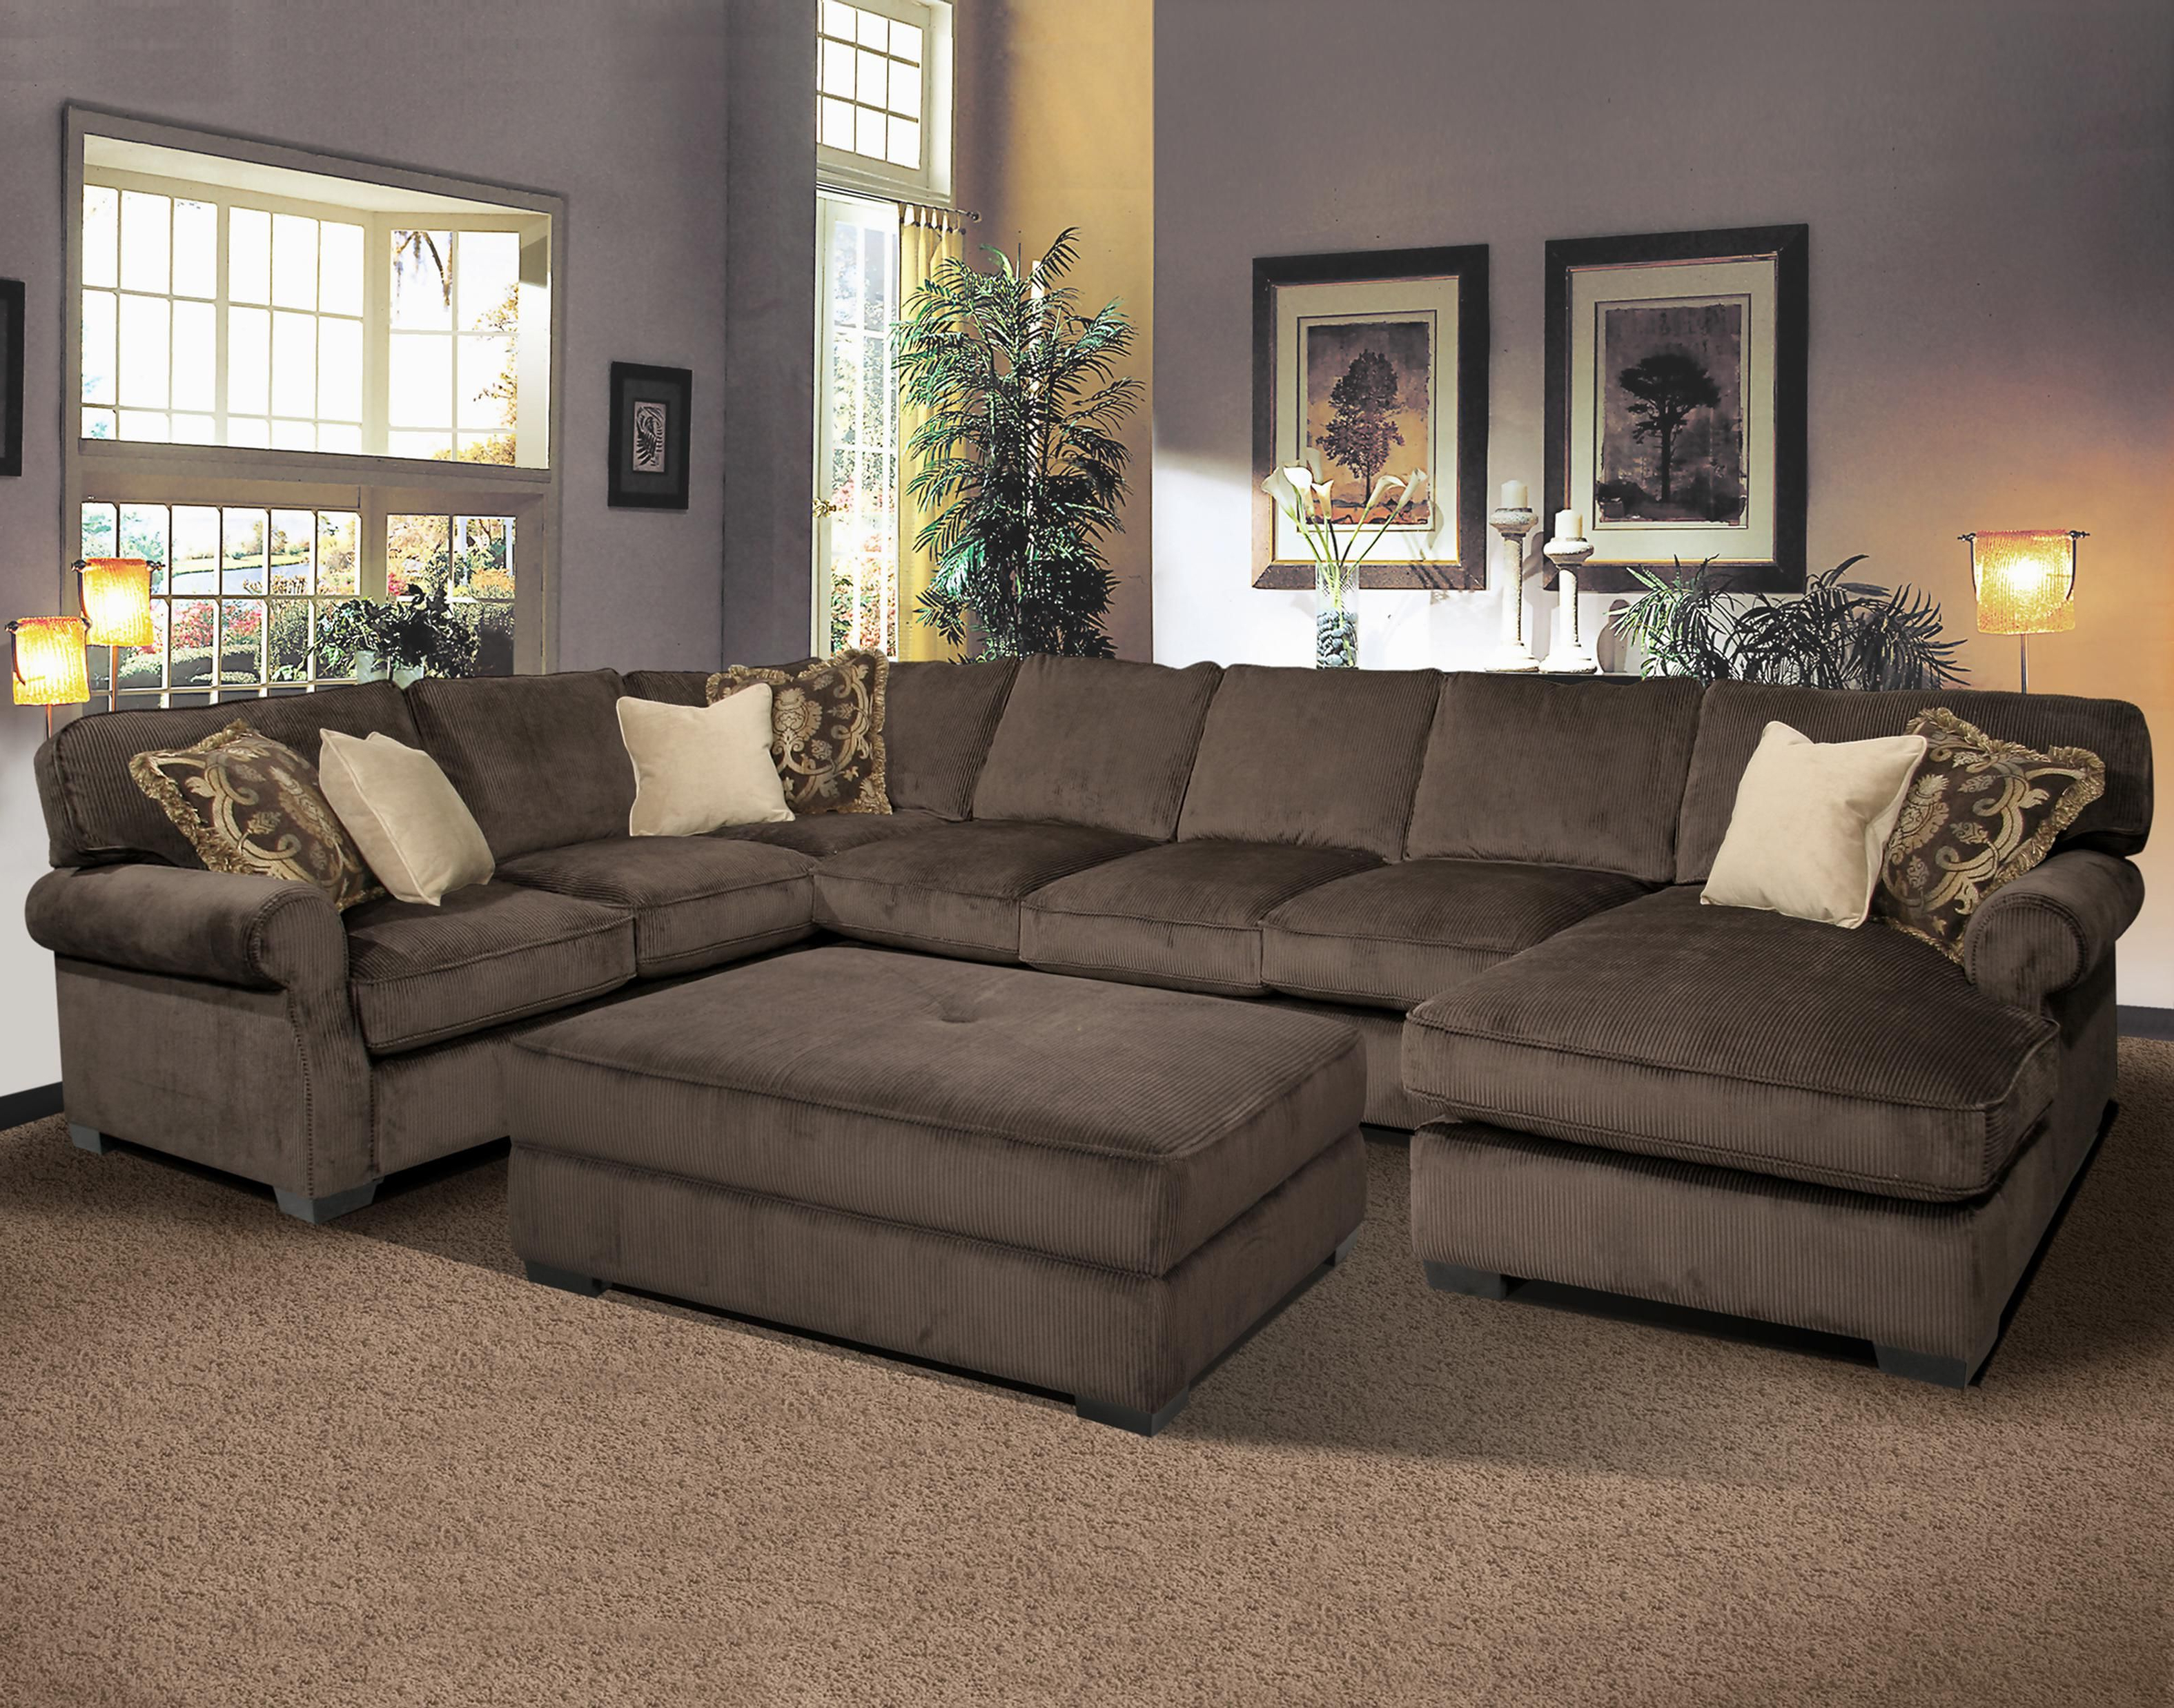 Sofas With Ottomans – Get Home Inteiror & House Design Inspiration • Throughout Famous Taren Reversible Sofa/chaise Sleeper Sectionals With Storage Ottoman (View 14 of 20)